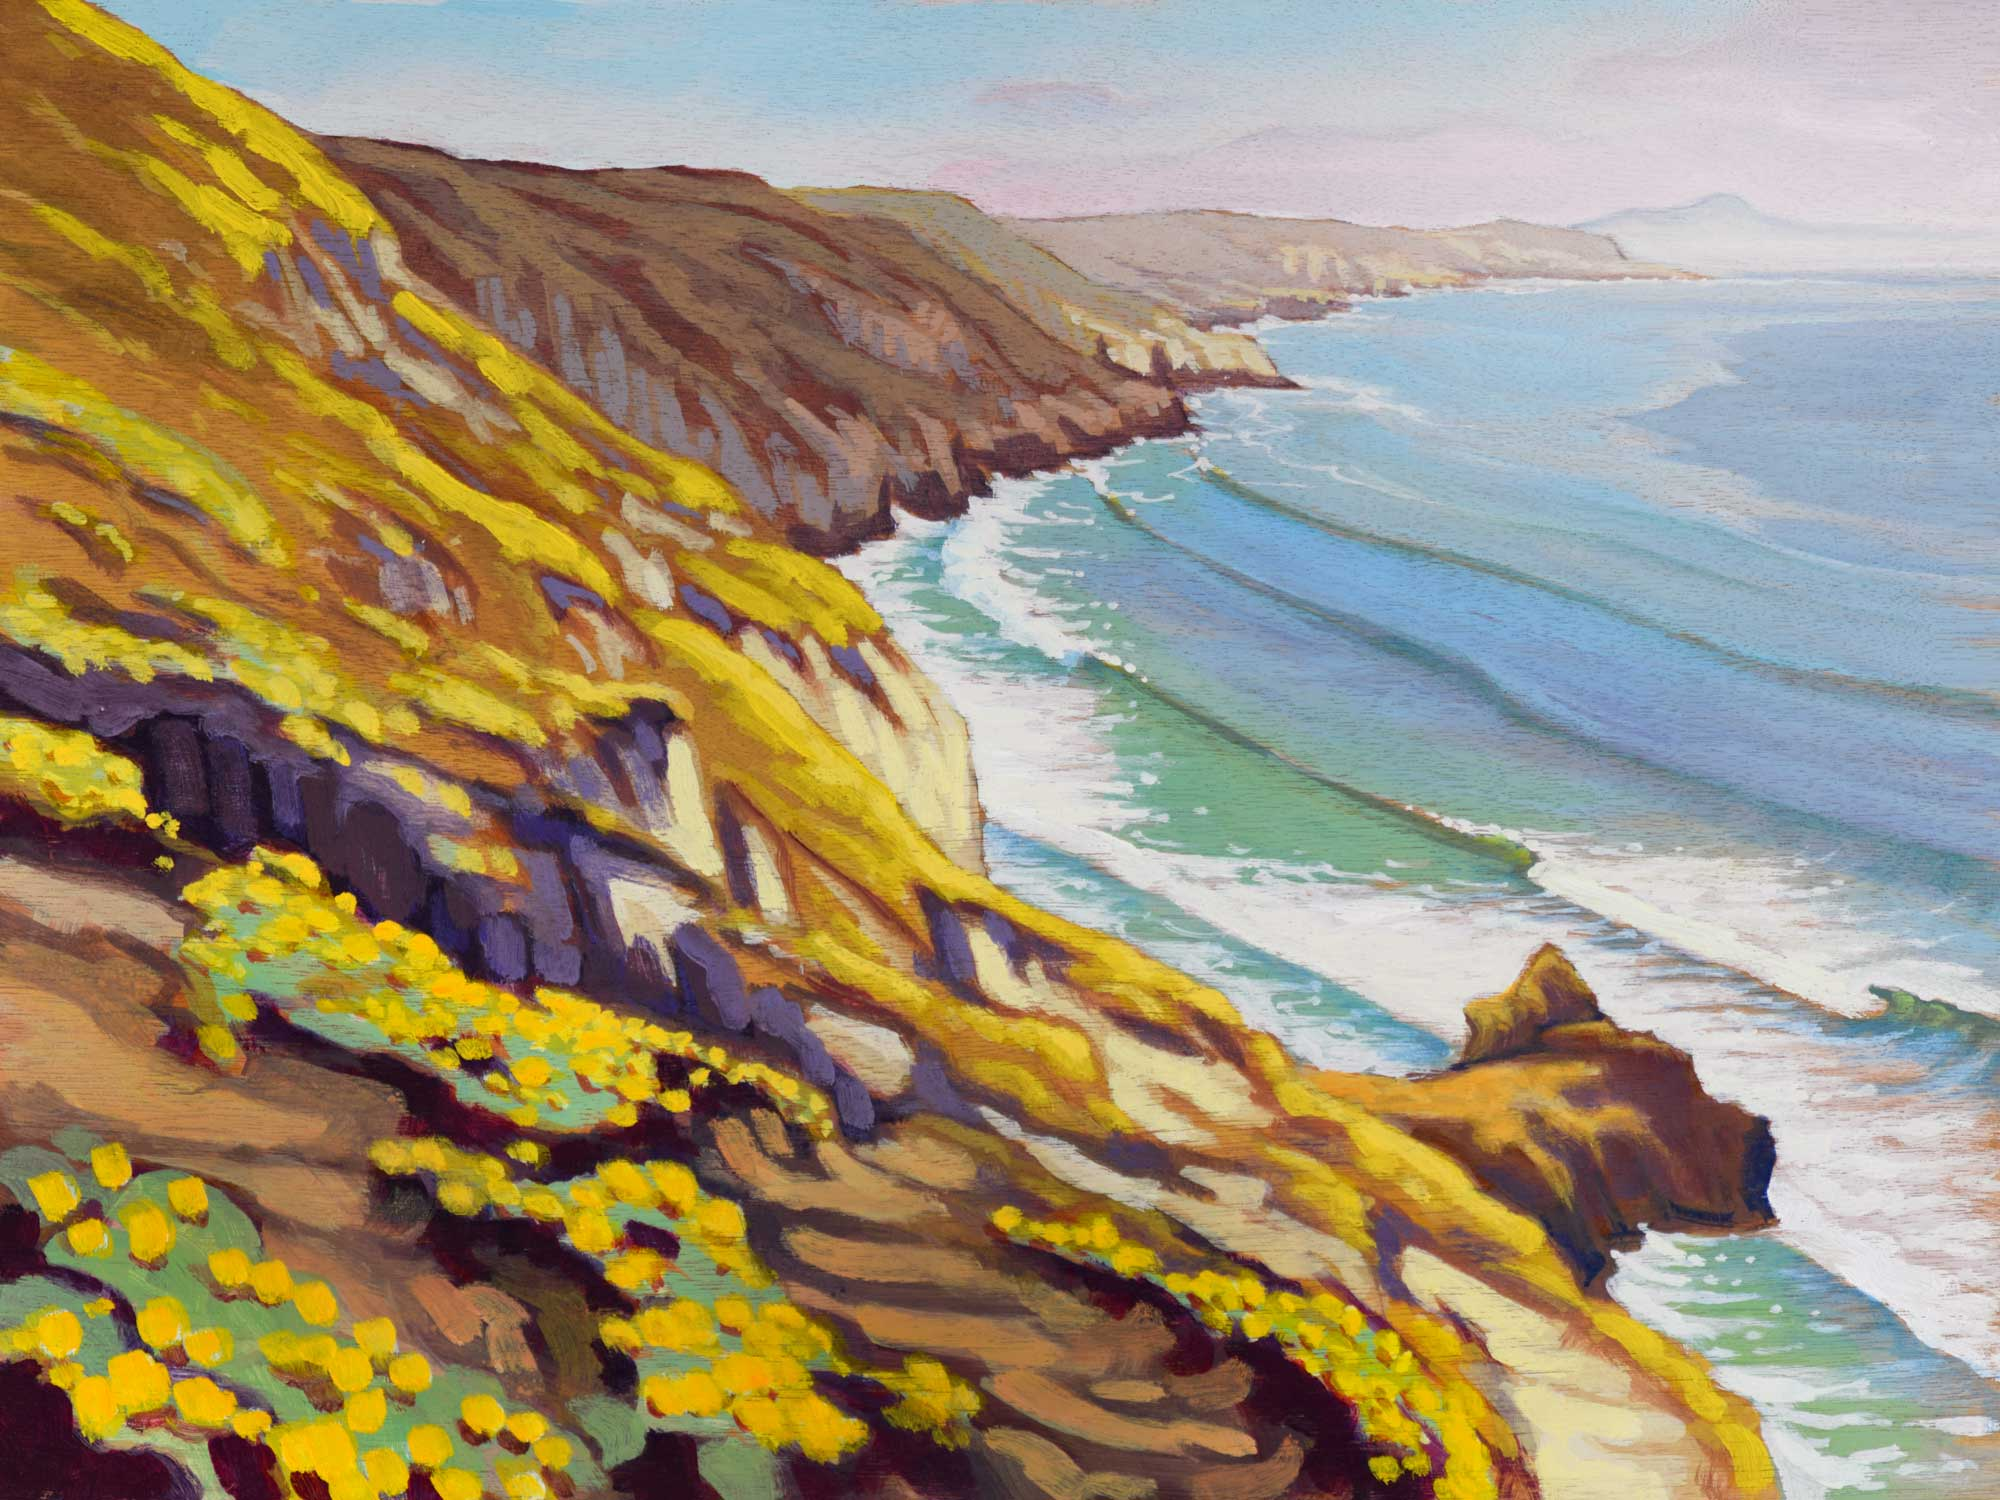 Plein air artwork from the Channel Islands National Park on Santa Rosa Island off the coast of southern California